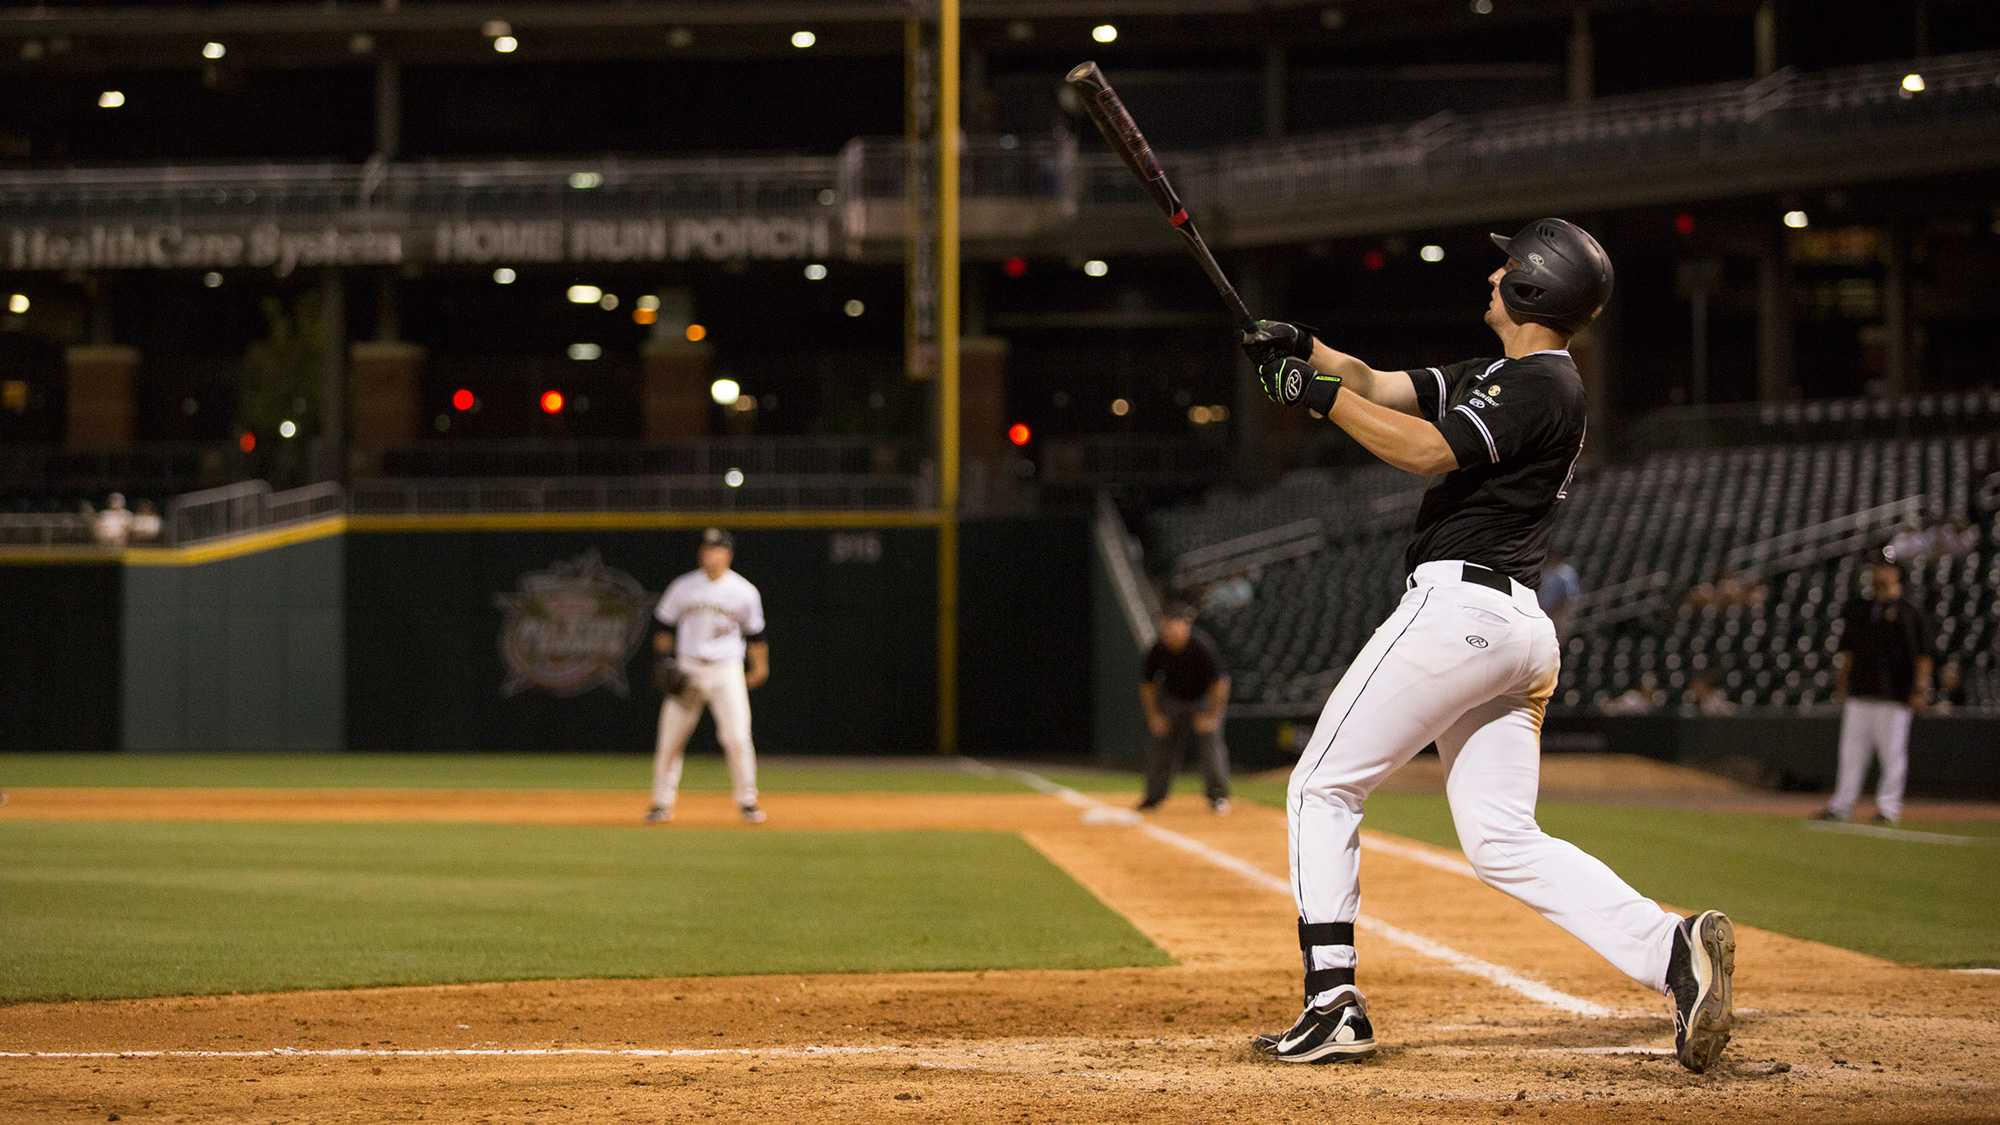 Senior infielder Grayson Atwood follows through his swing. Courtesy of Kelsey Sharkey; App State athletics